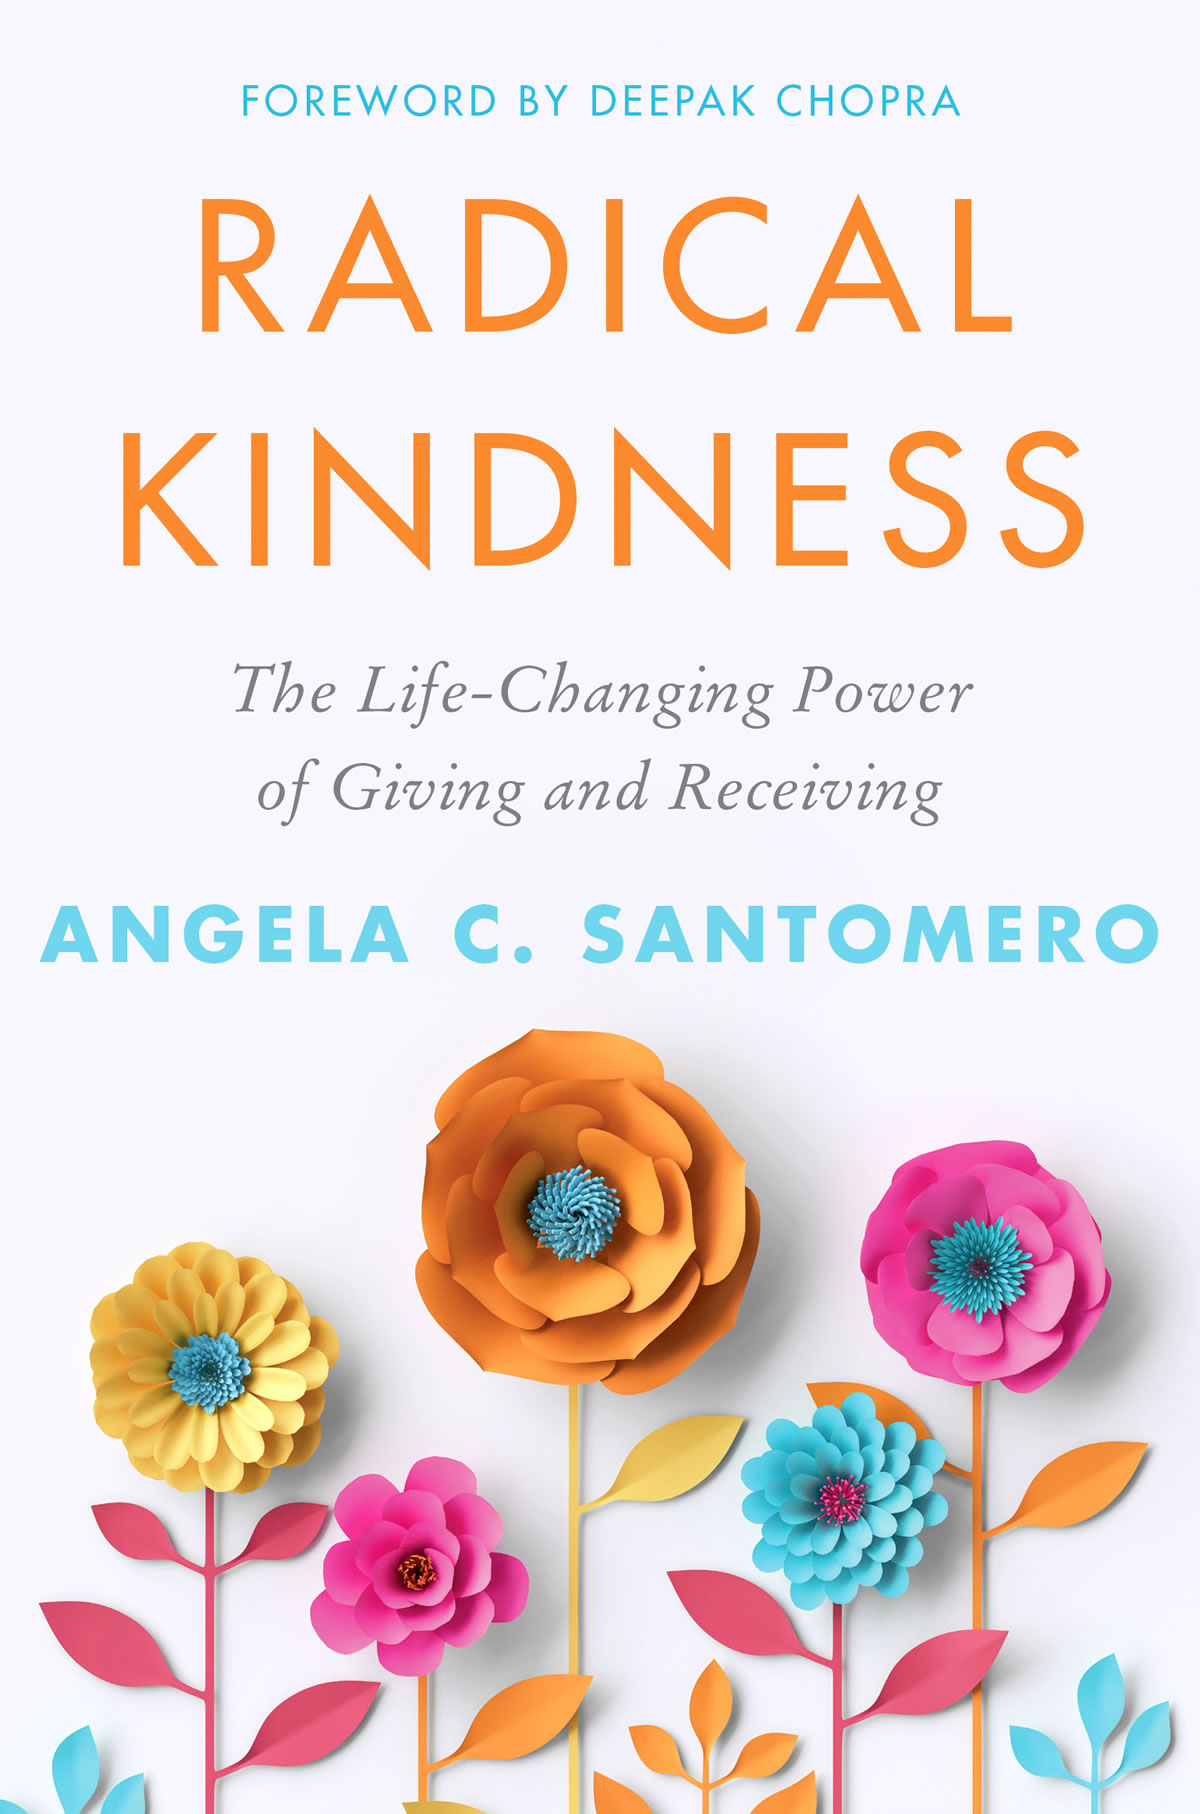 Book cover of Radical Kindness The life-changing power of giving and receiving, by Angela C. Santomero, Foreword by Deepak Chopra